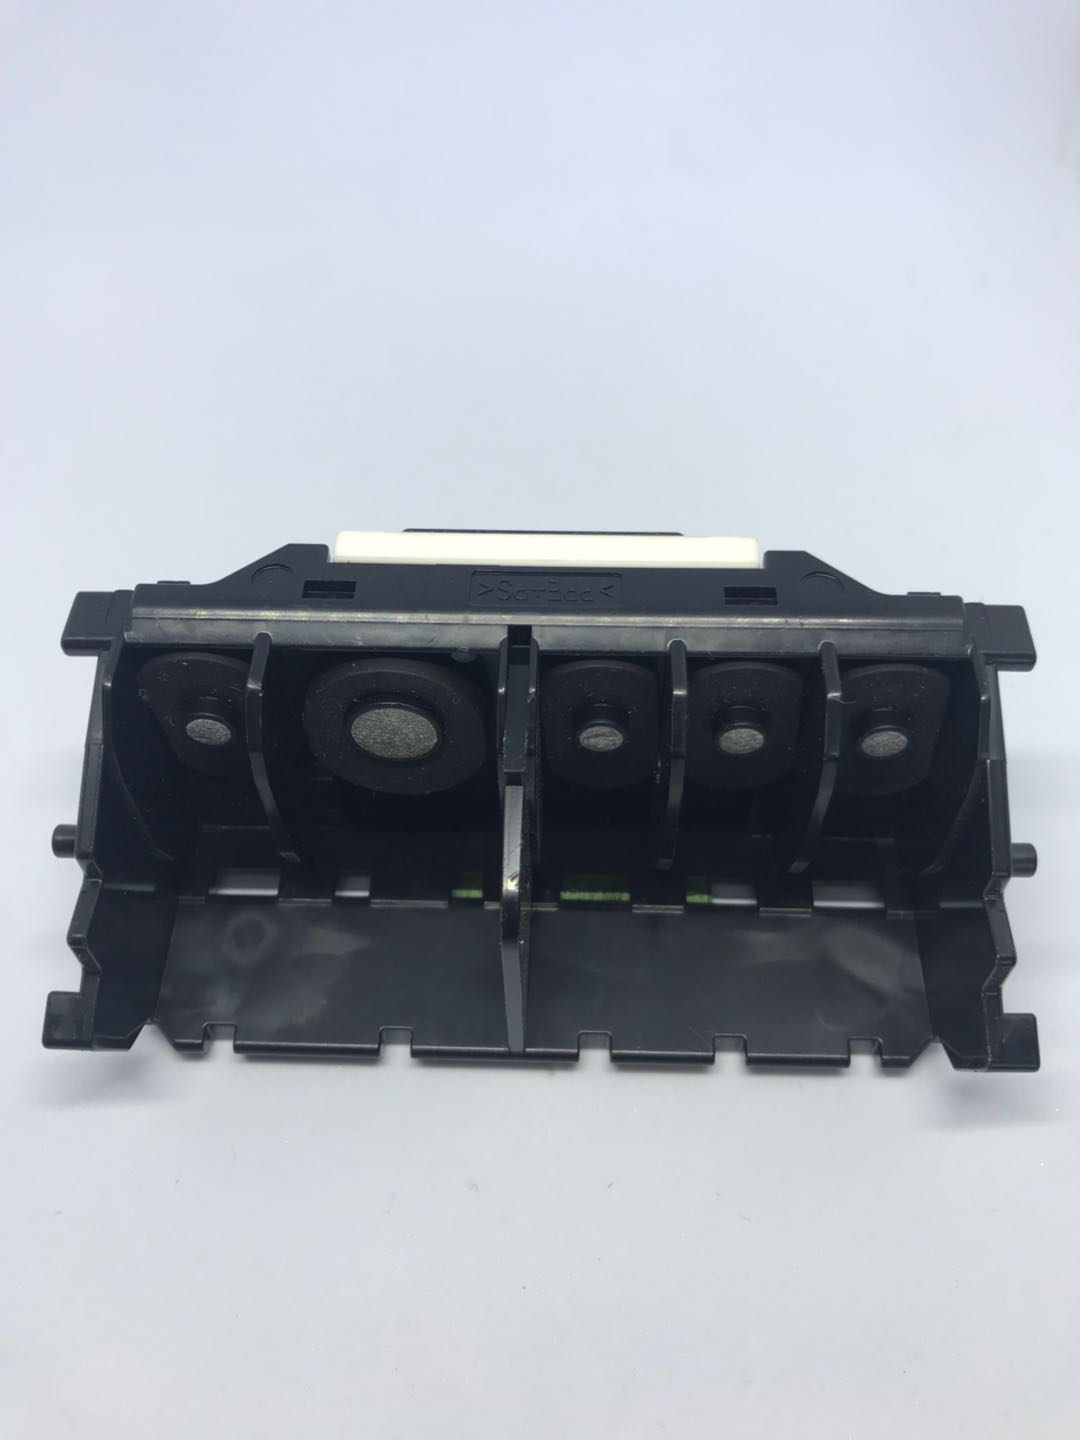 QY6-0082 Printhead Printer Print Head For Canon Pxima Ip7220 IP7250 MG5420 MG5440 MG5450 MG5460 MG5520 MG5550 MG6420 MG6450 image